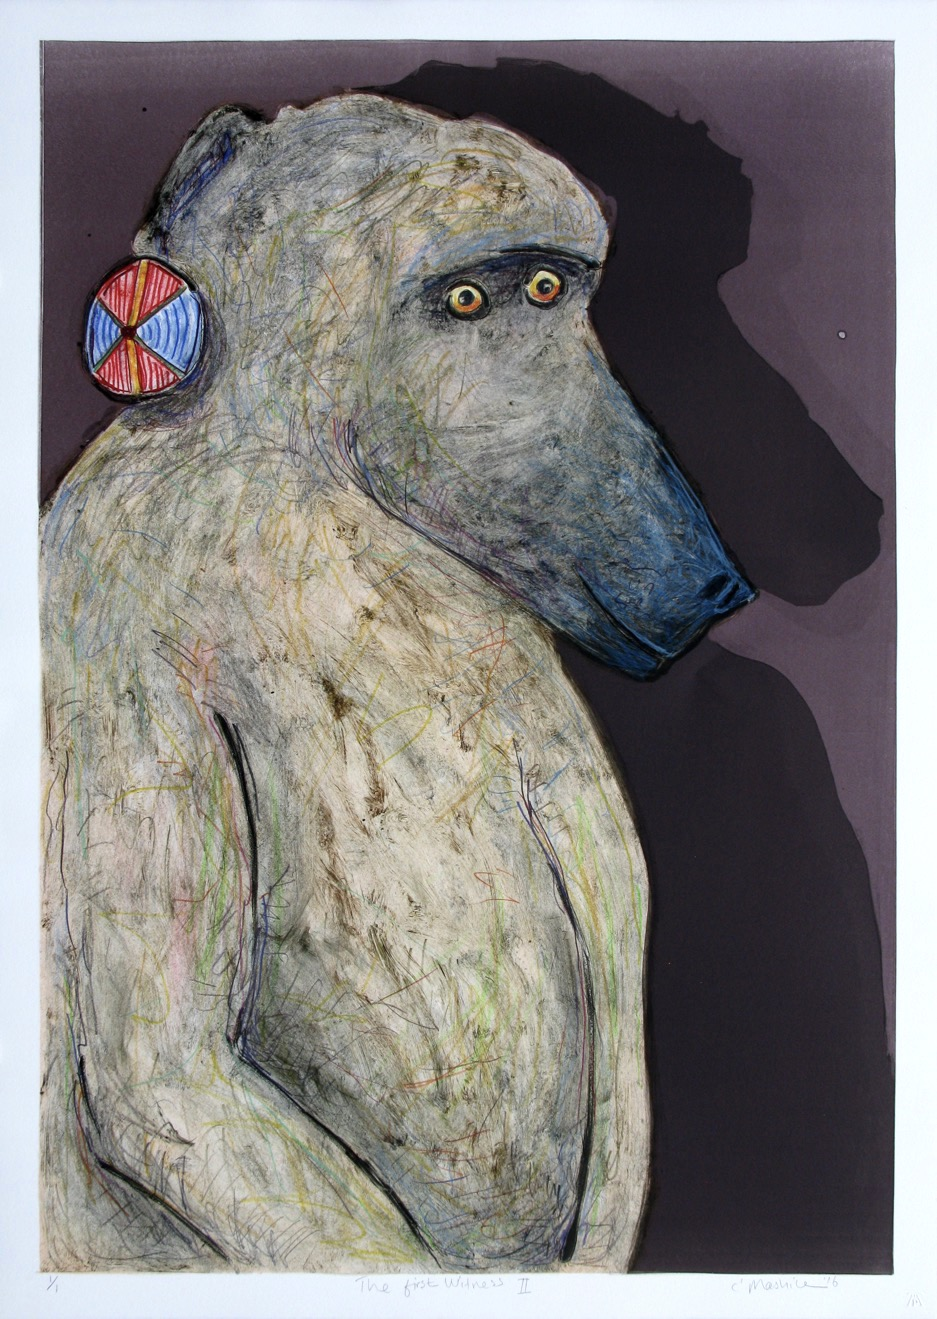 Baboon head and shoulders with shadow. The baboon is wearing a colourful disc earring.